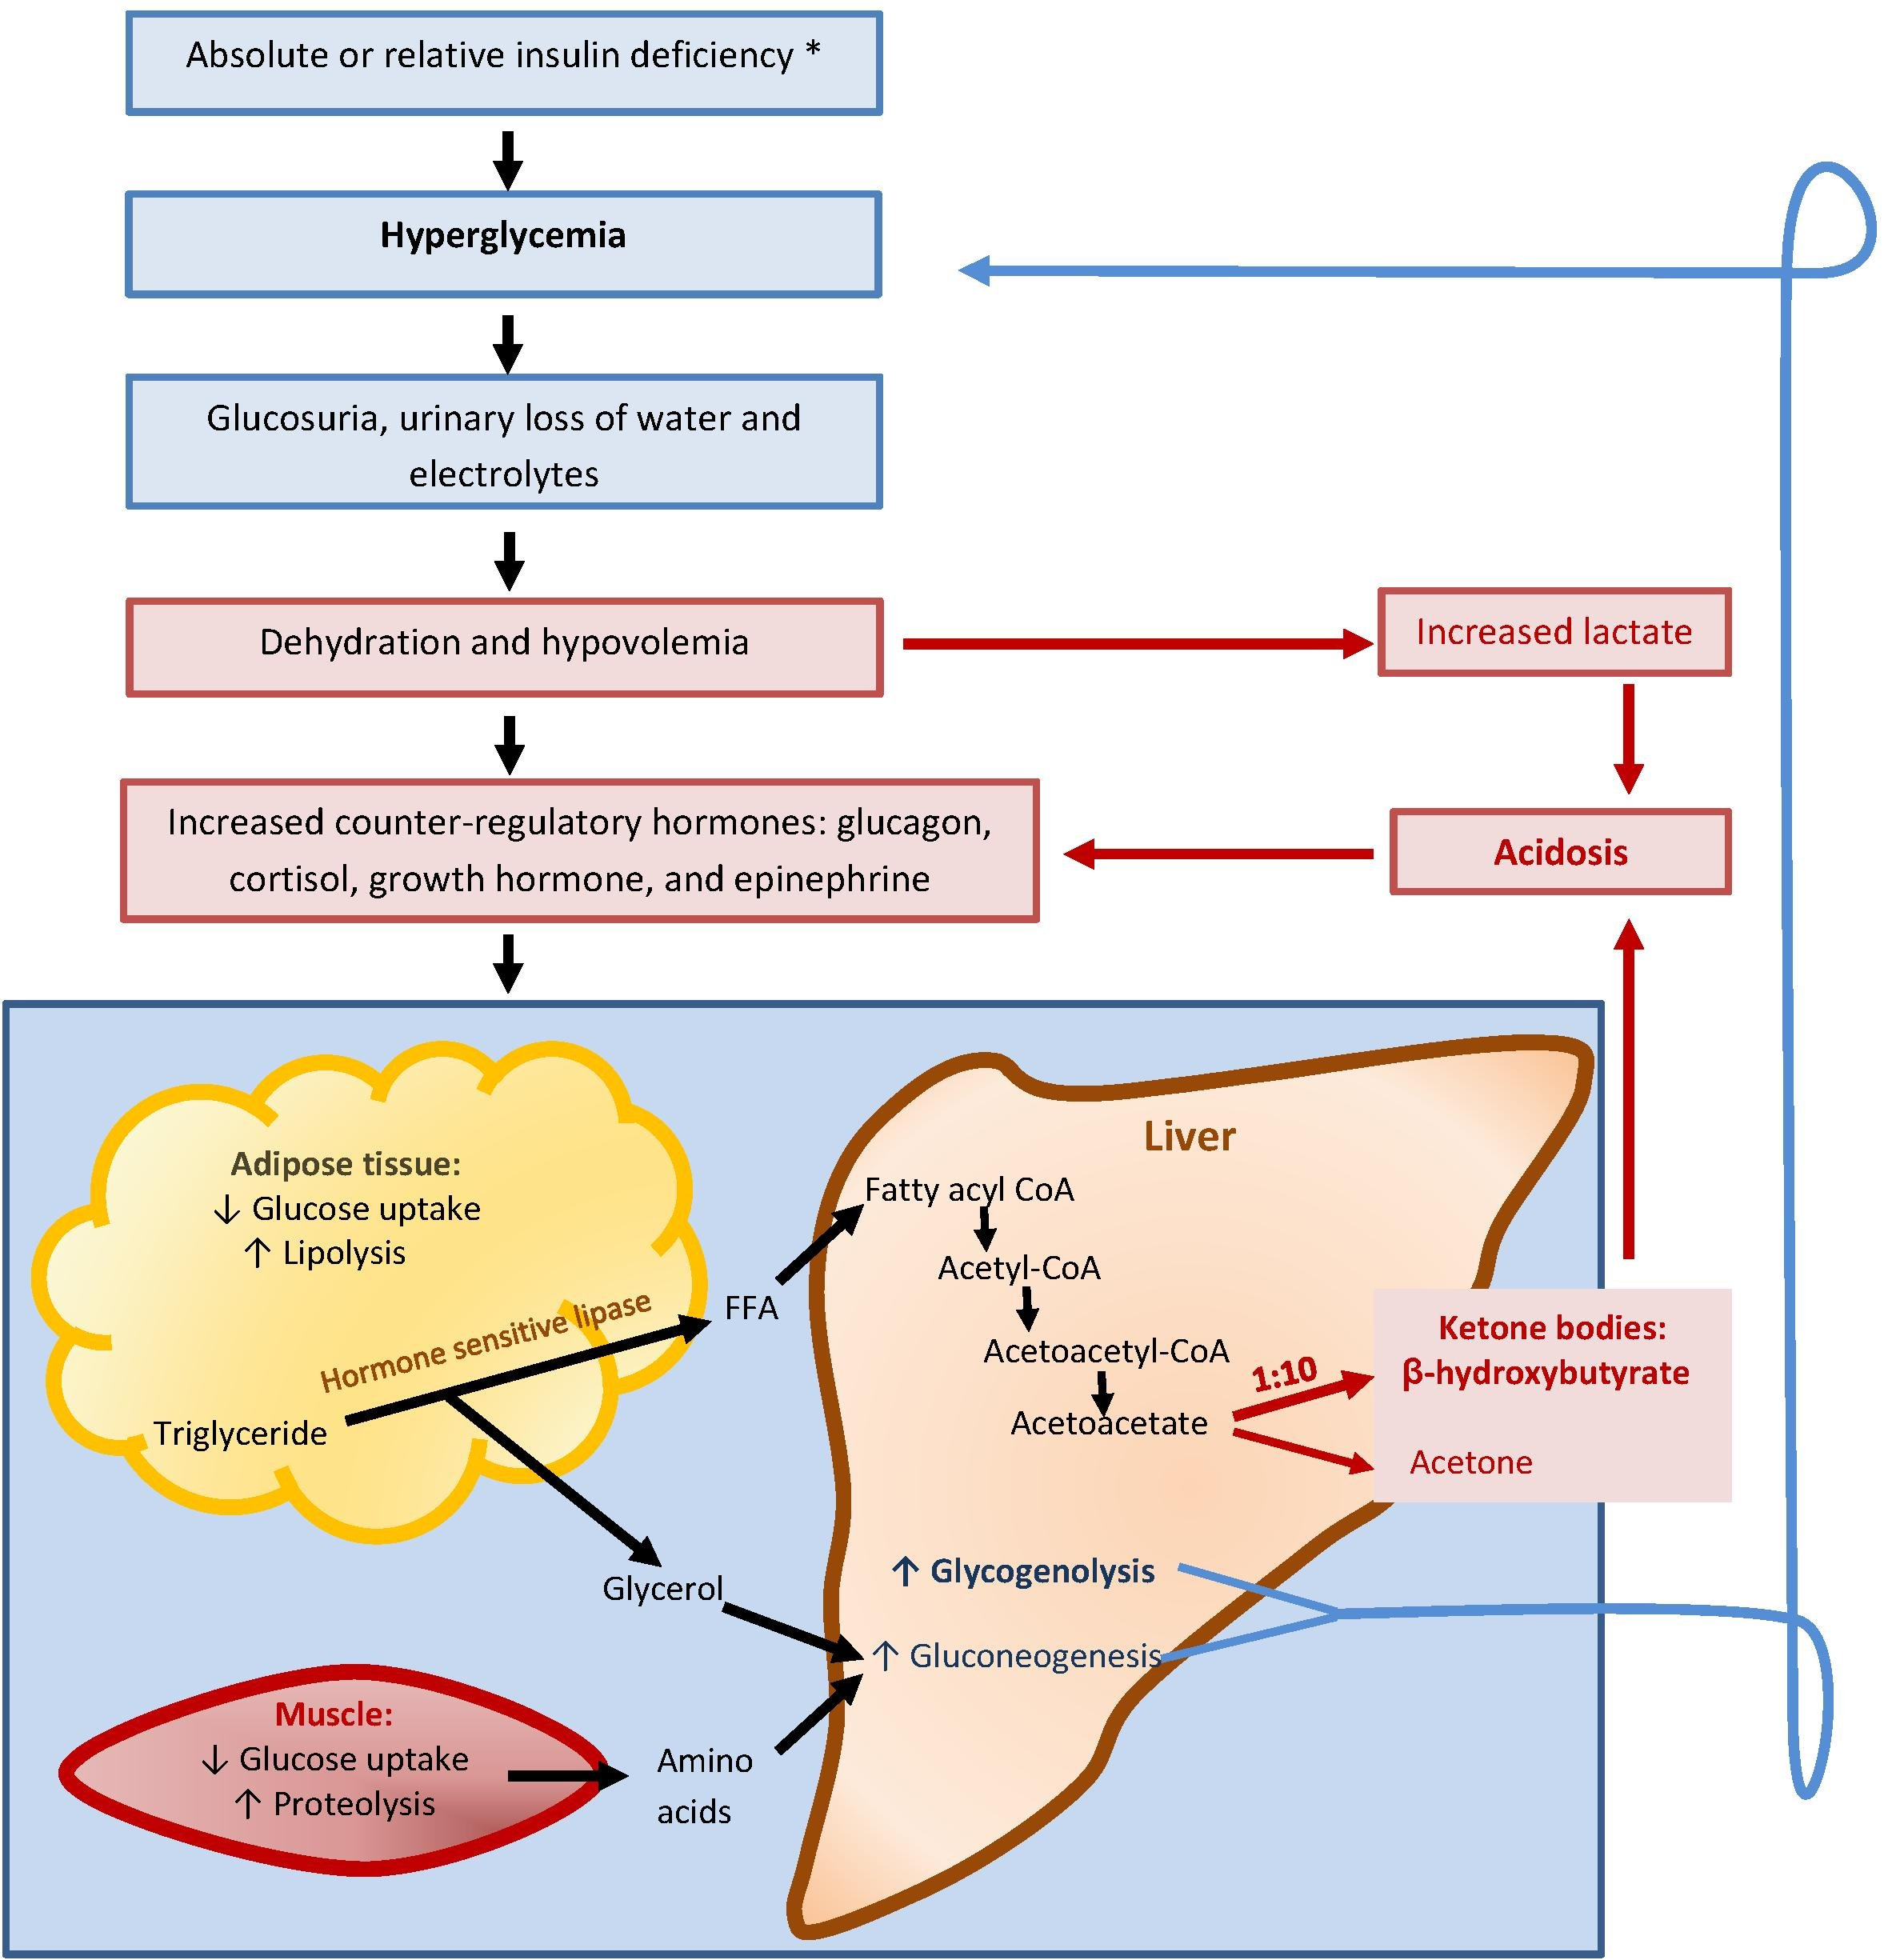 Diabetic Ketoacidosis In The Pediatric Population With Type 1 Diabetes